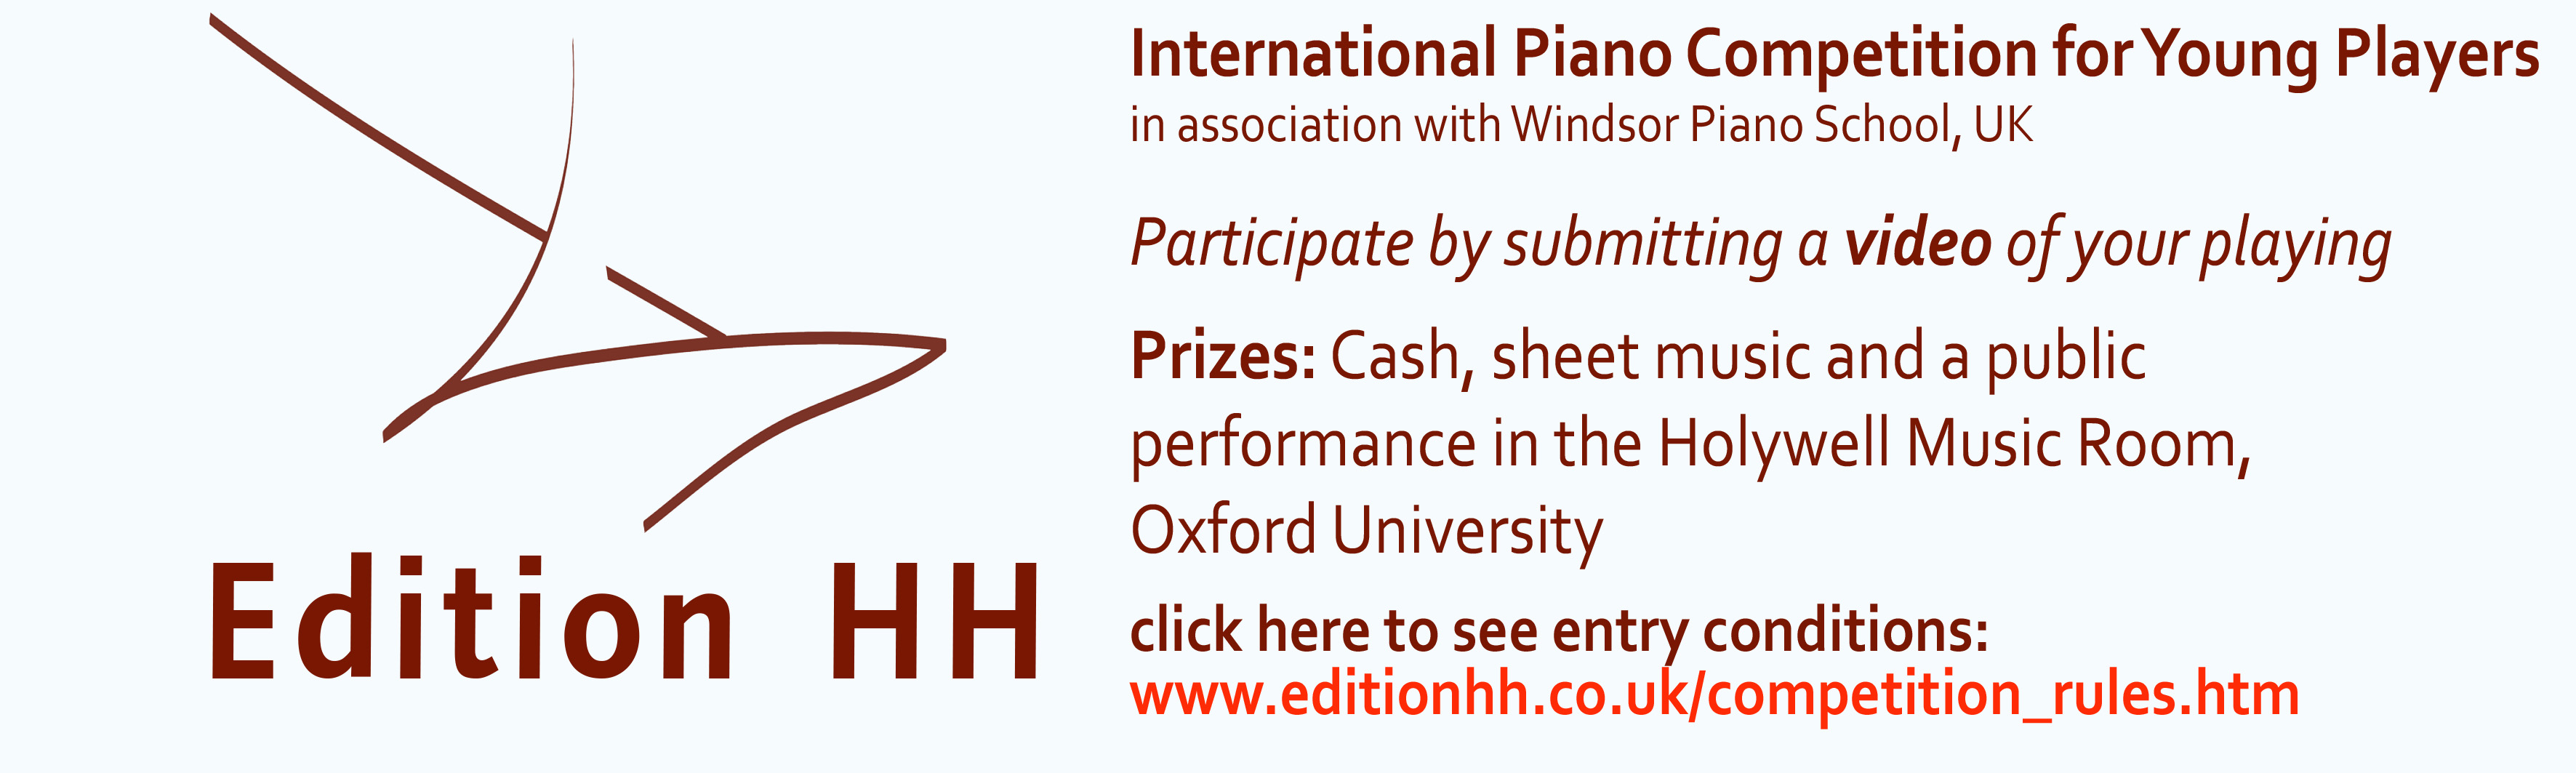 Pianocompetition